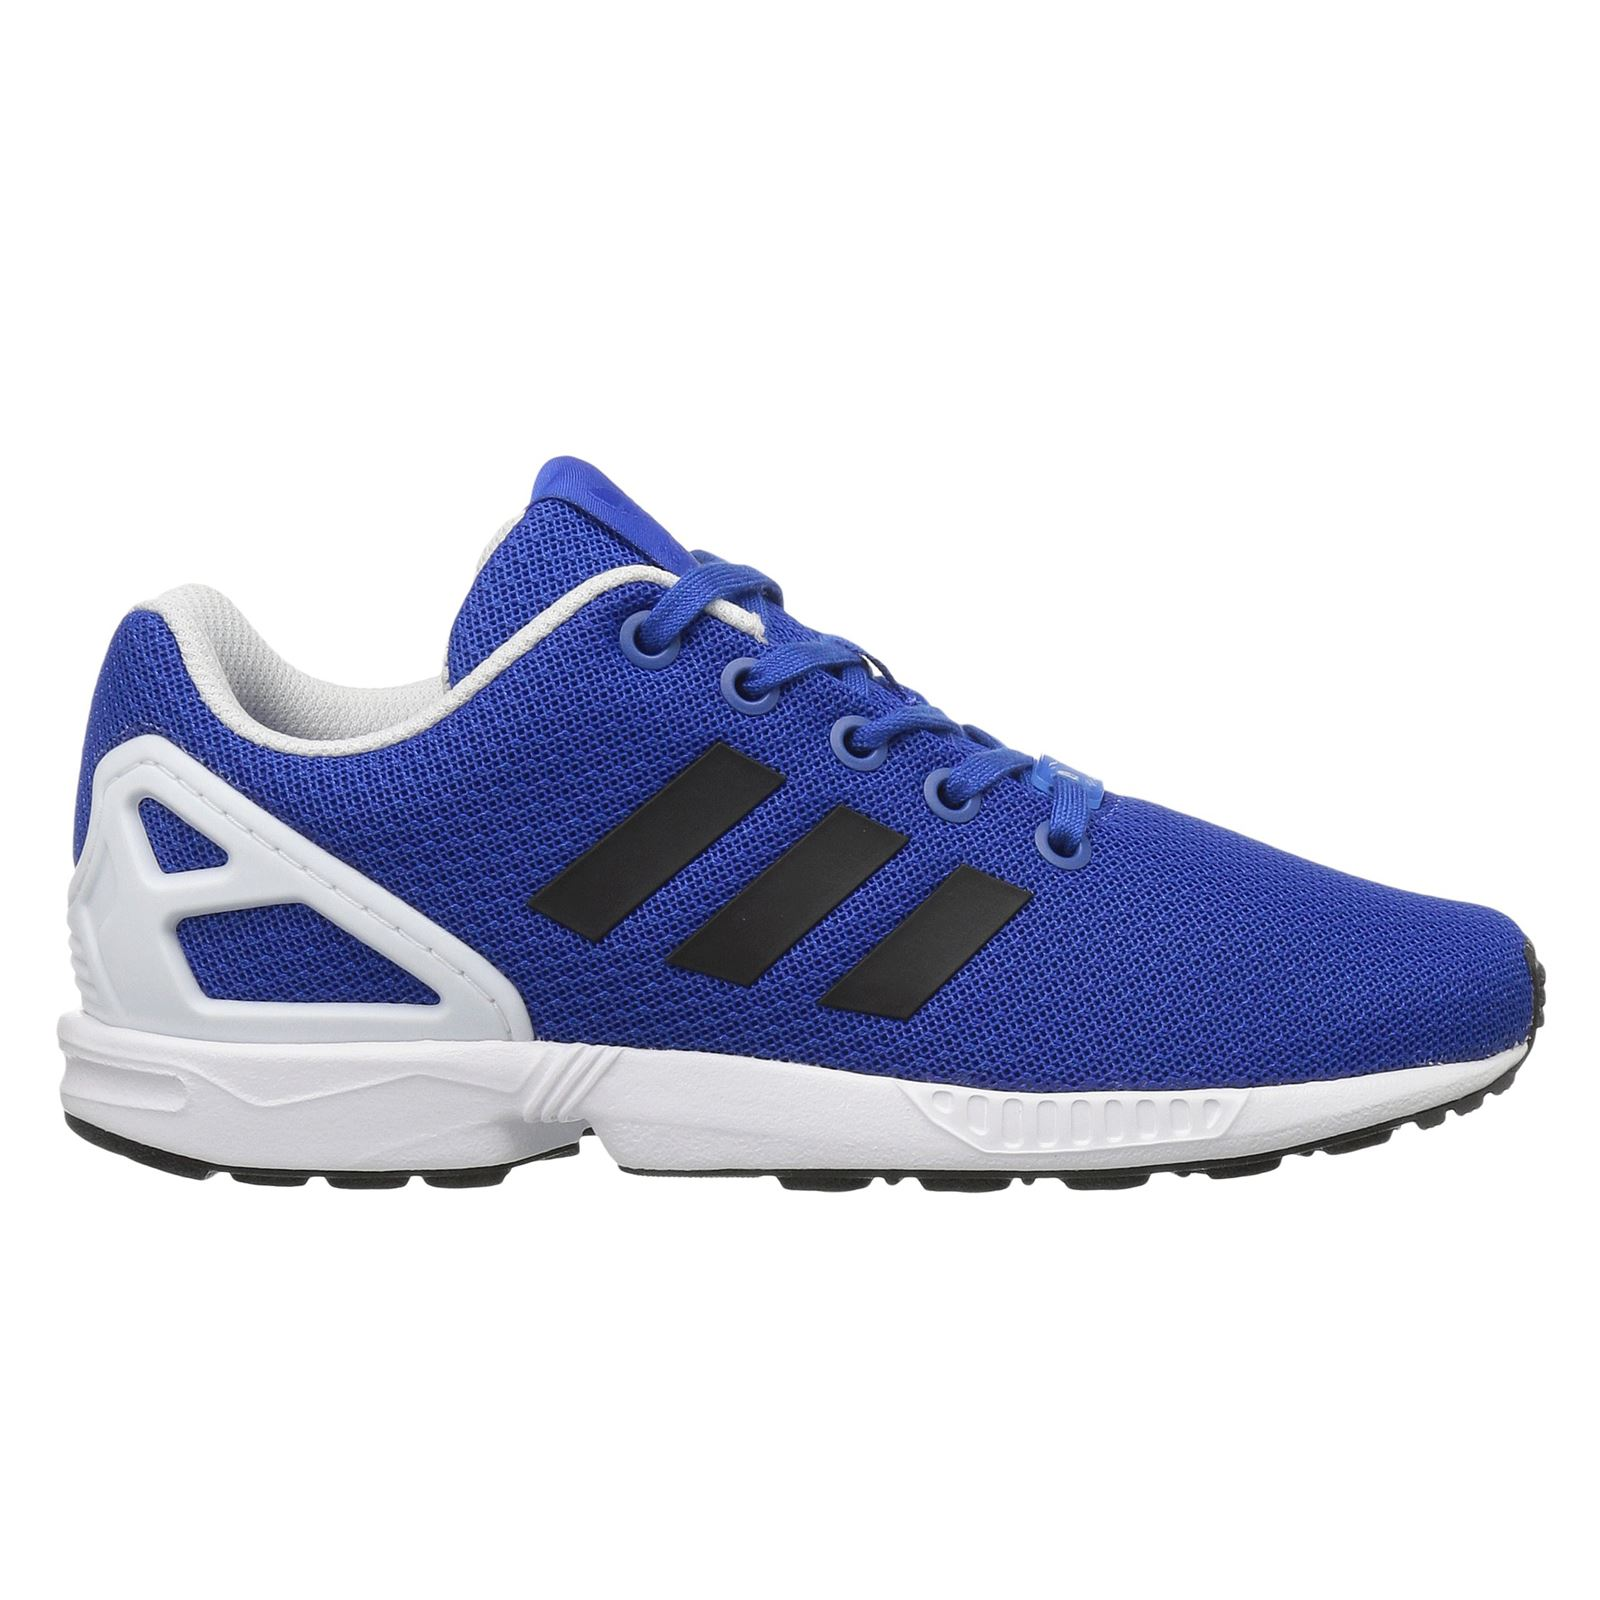 hot sale online 16f89 b7daf Details about Adidas ZX Flux Blue White Kids Low Top Trainers